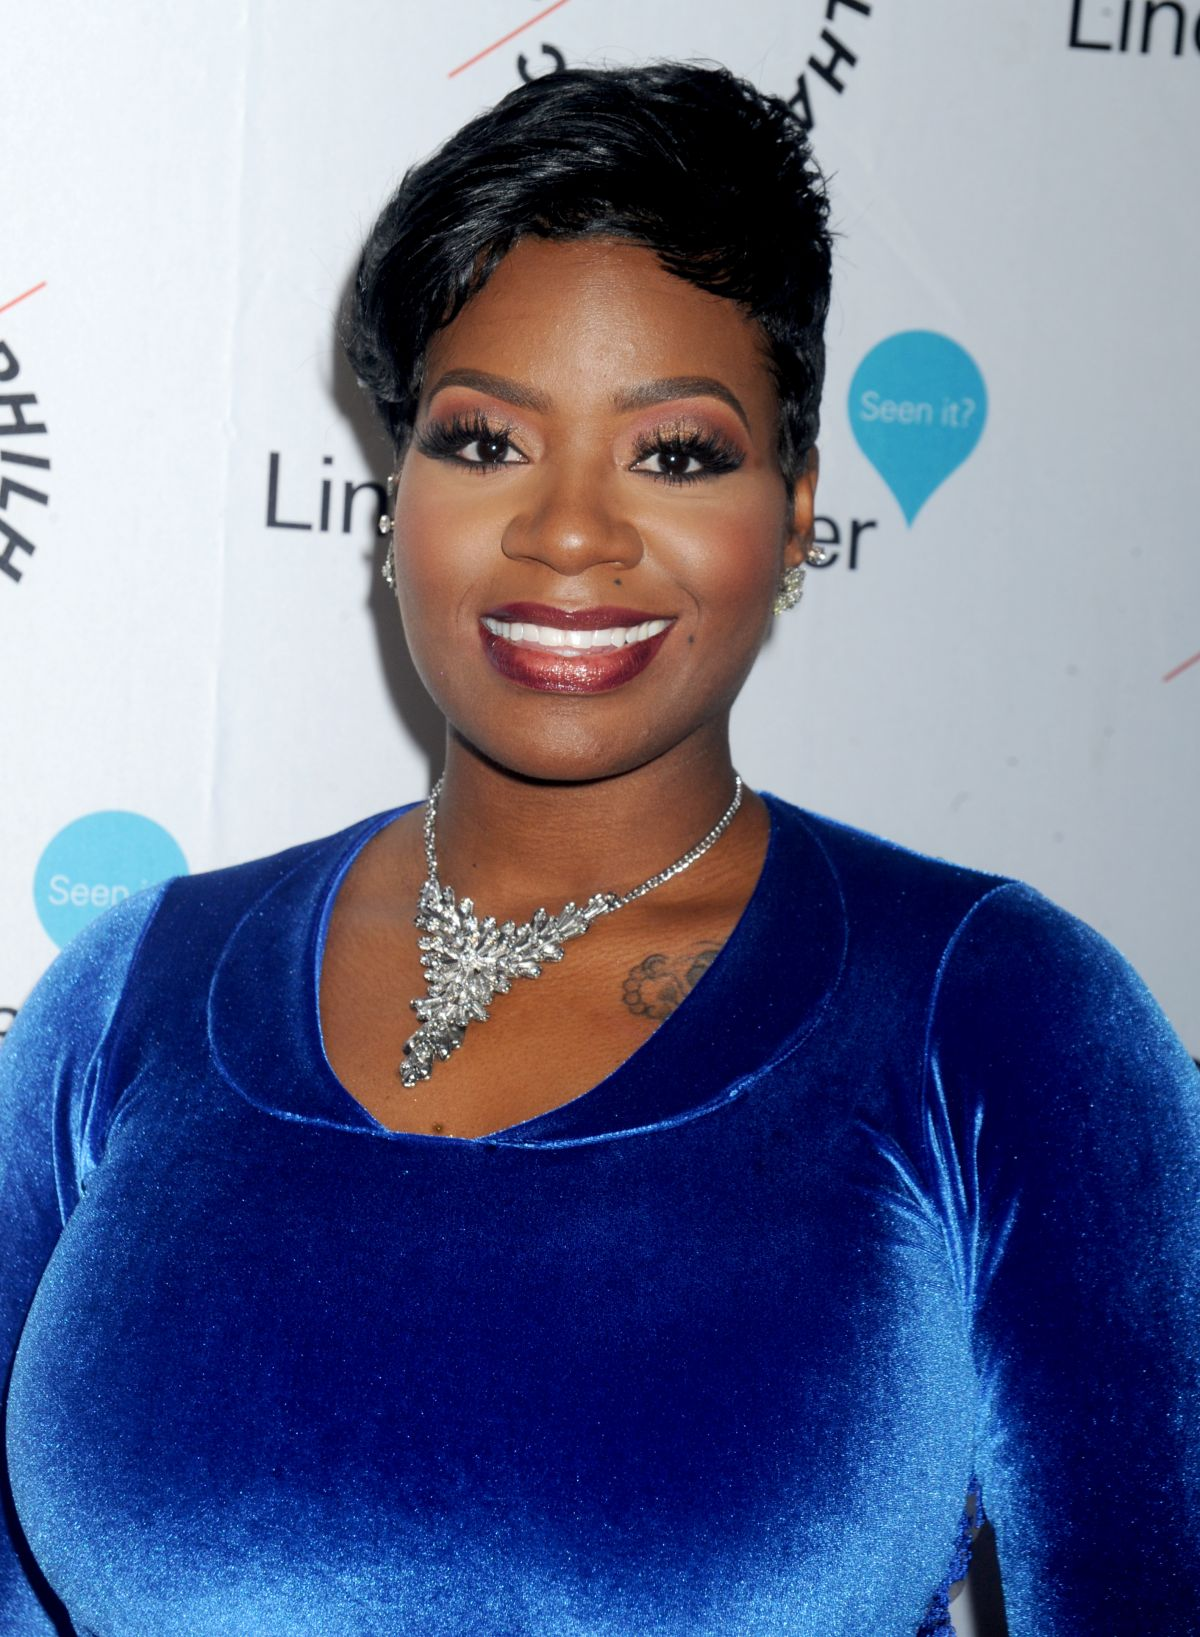 FANTASIA BARRINO at Sinatra 100: An All-star Grammy Concert Celebrating Frank Sinatra in Las Vegas 12/02/2015